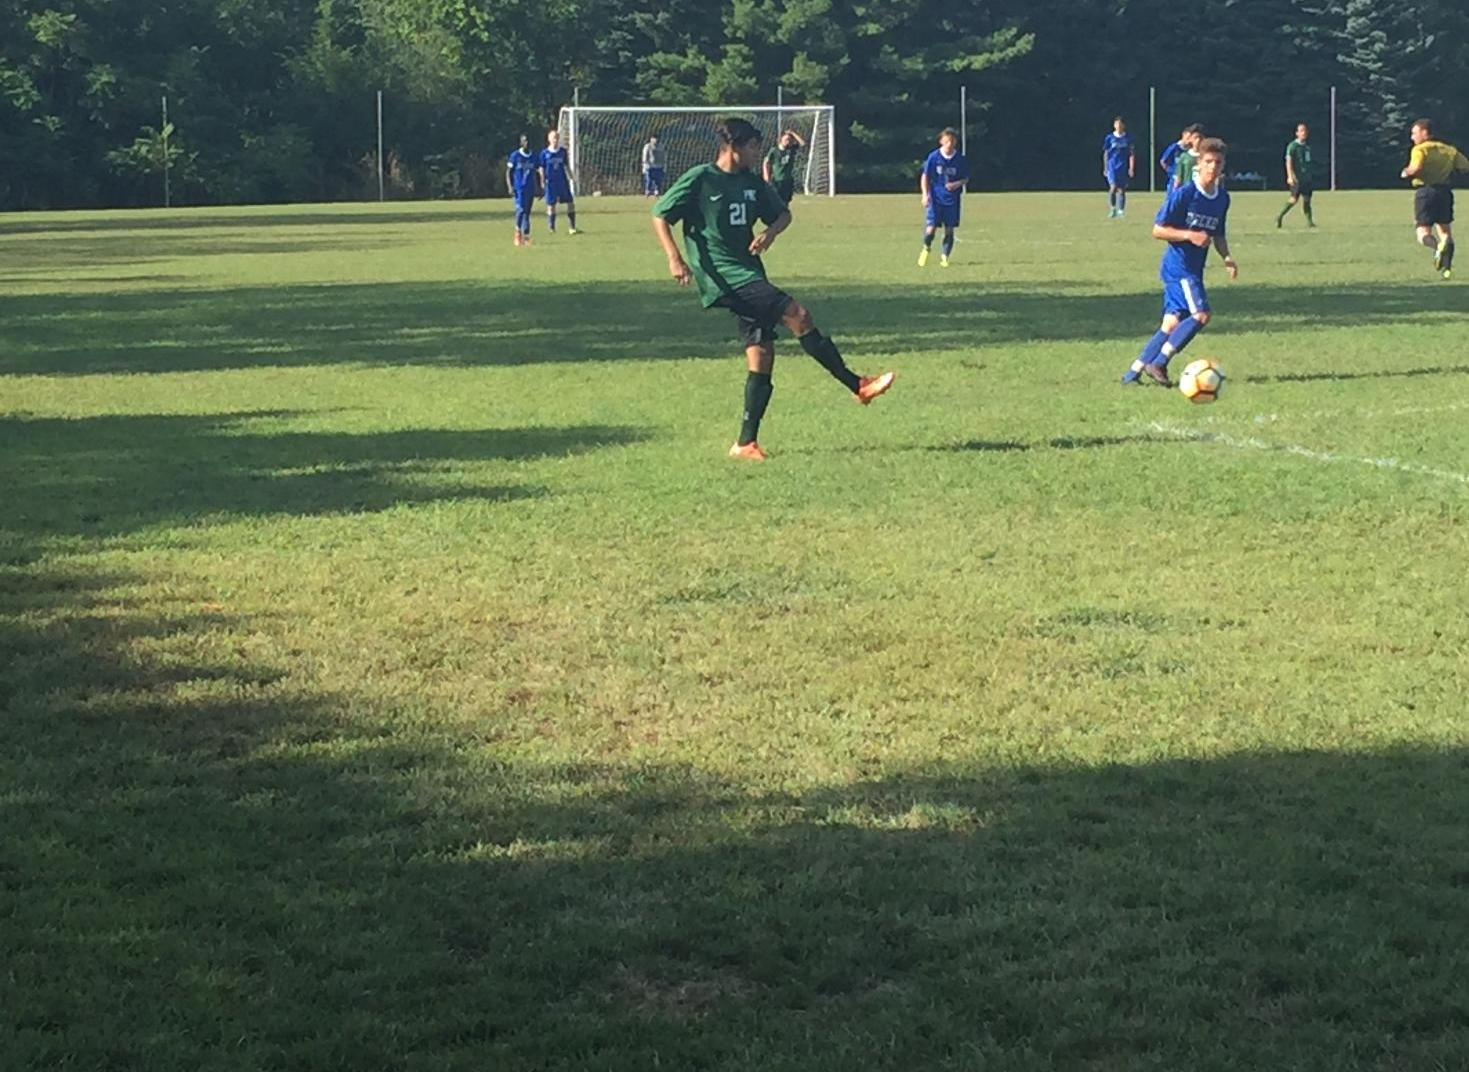 Gators Can't Hold Lead in 3-2 at Daniel Webster